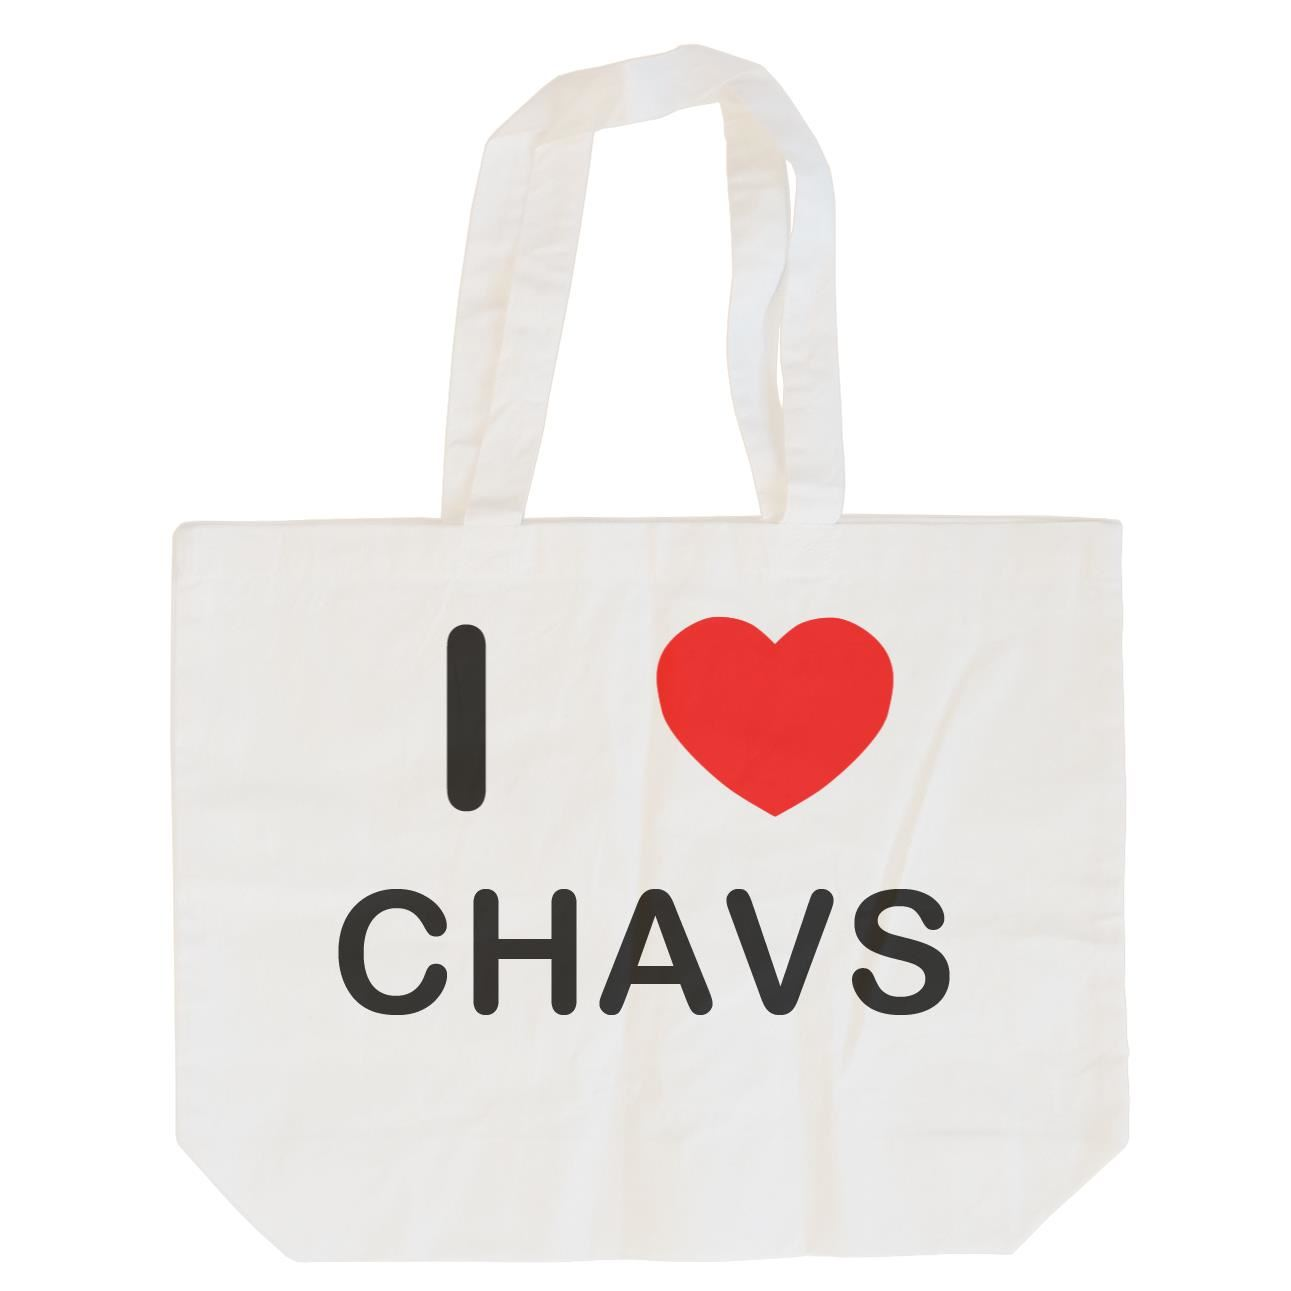 I Love Chavs - Cotton Bag | Size choice Tote, Shopper or Sling